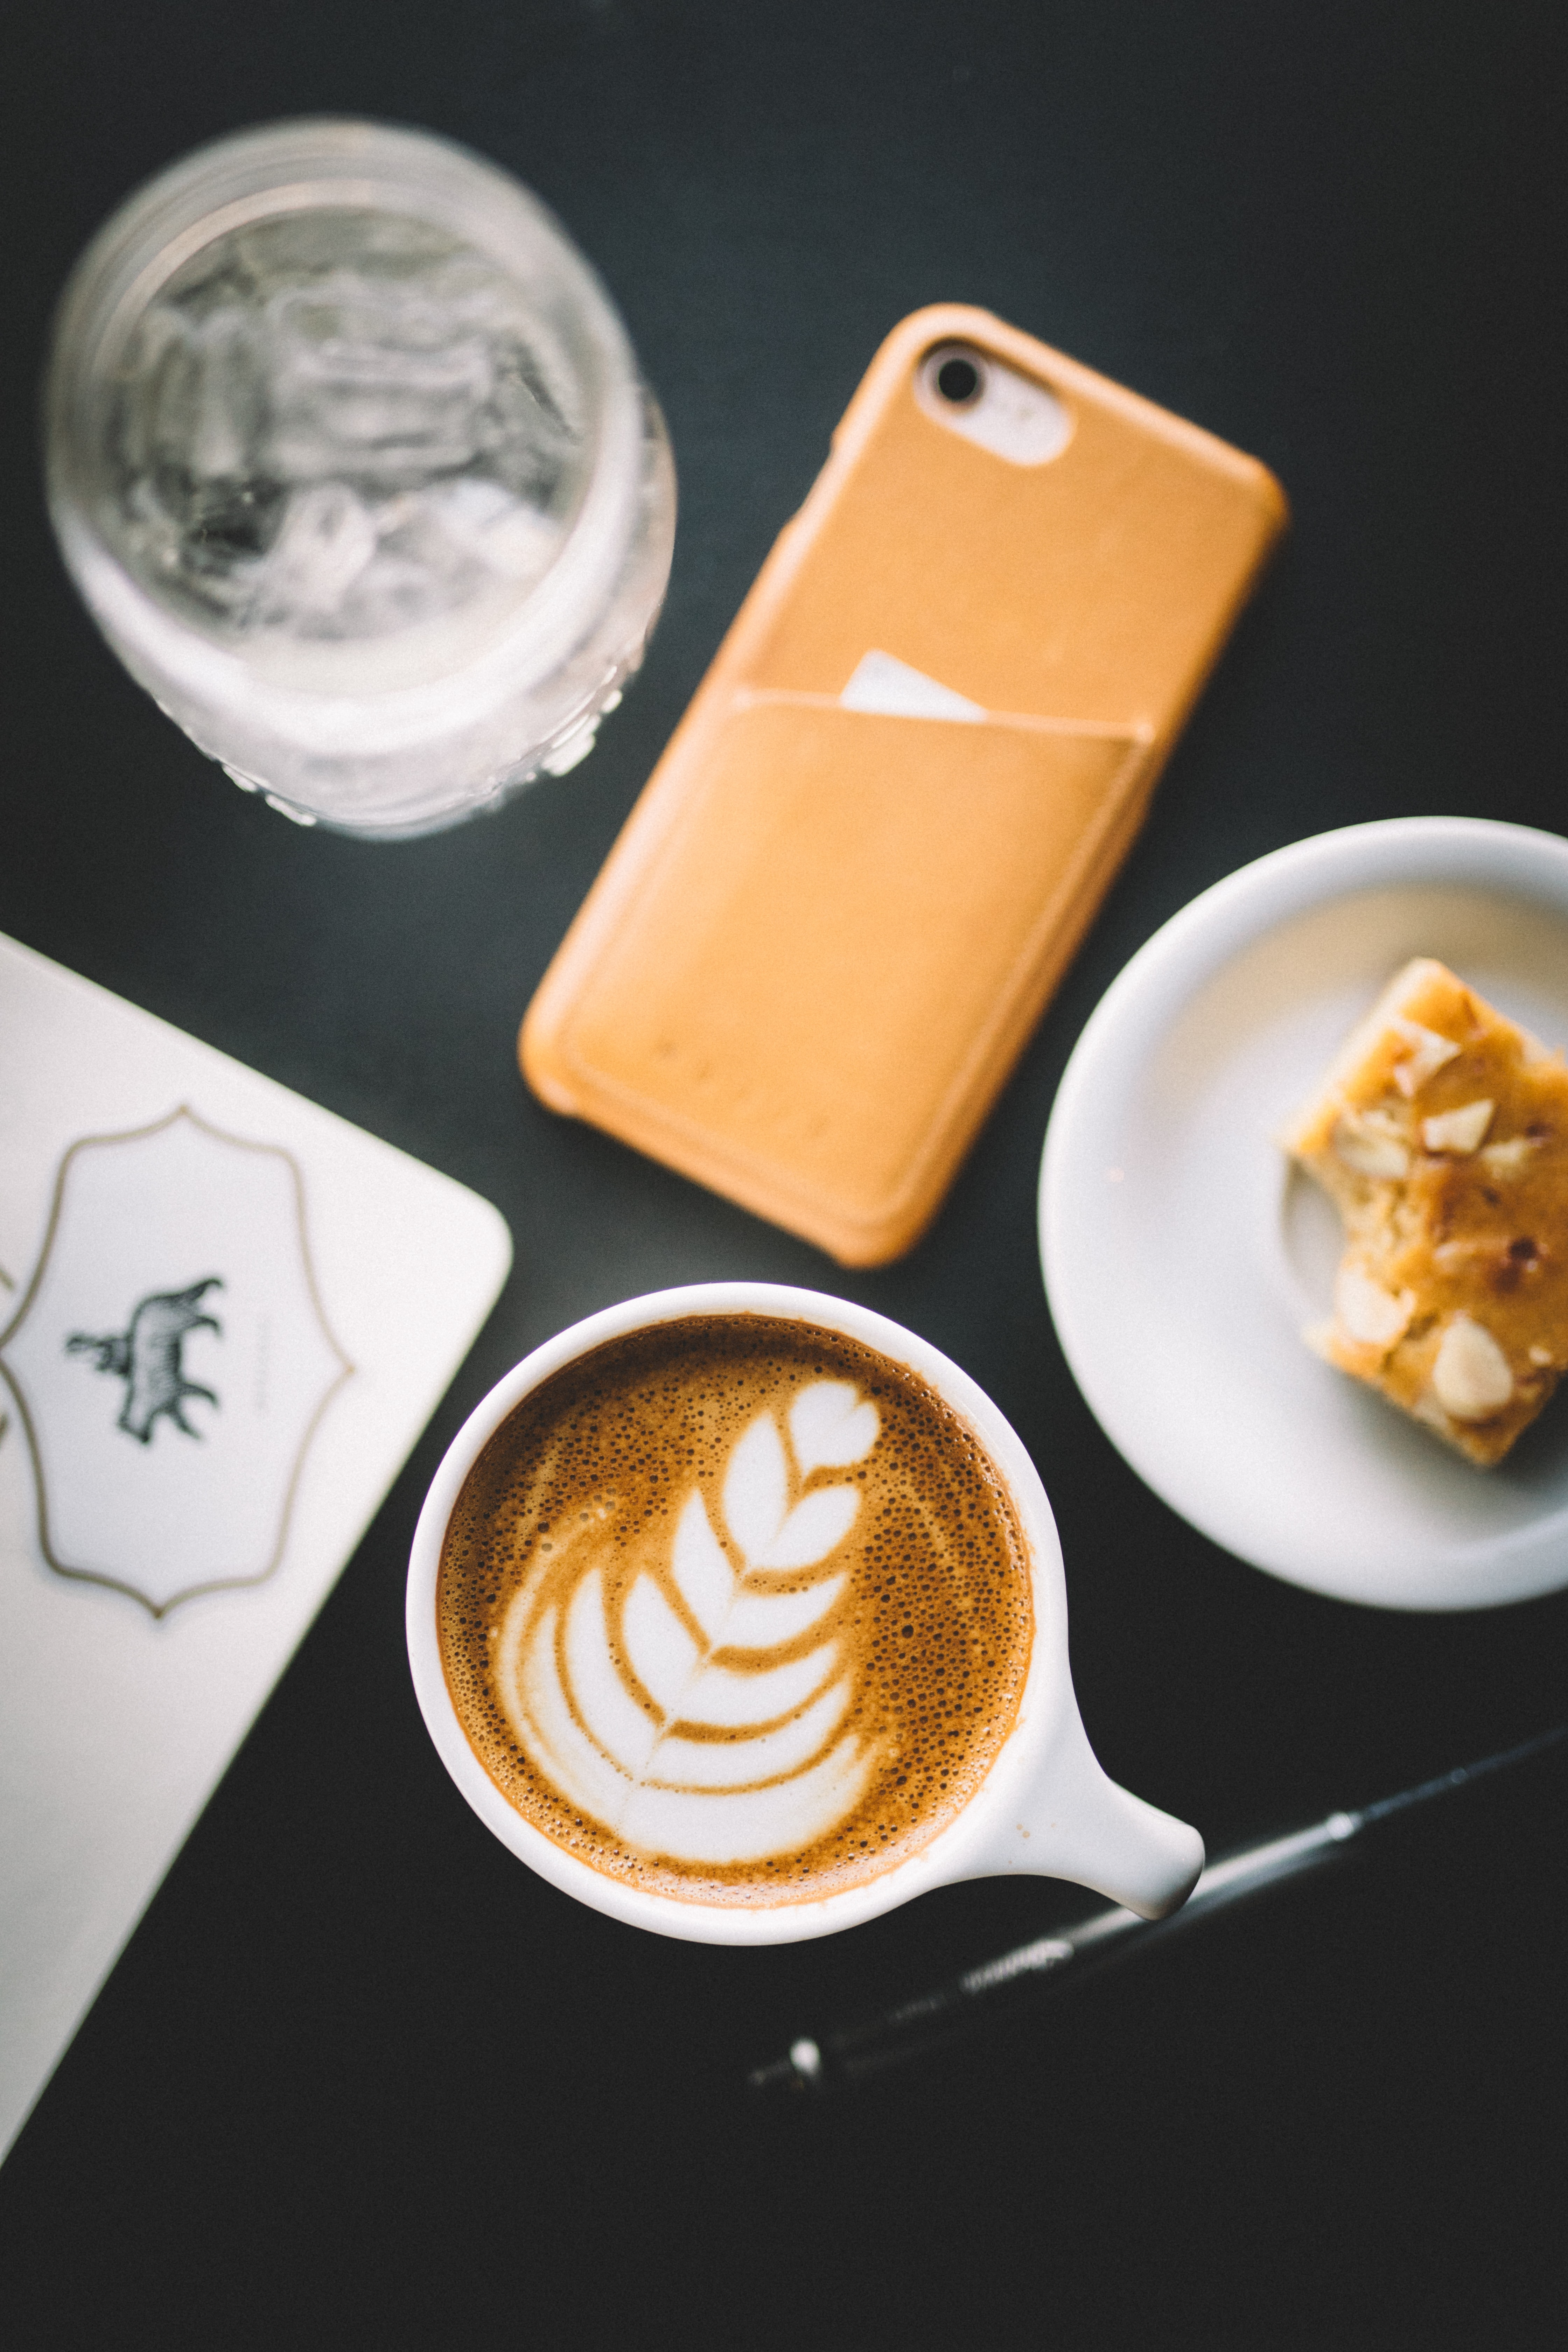 selective focus photo of cup of cappuccino beside smartphone, saucer, and glass